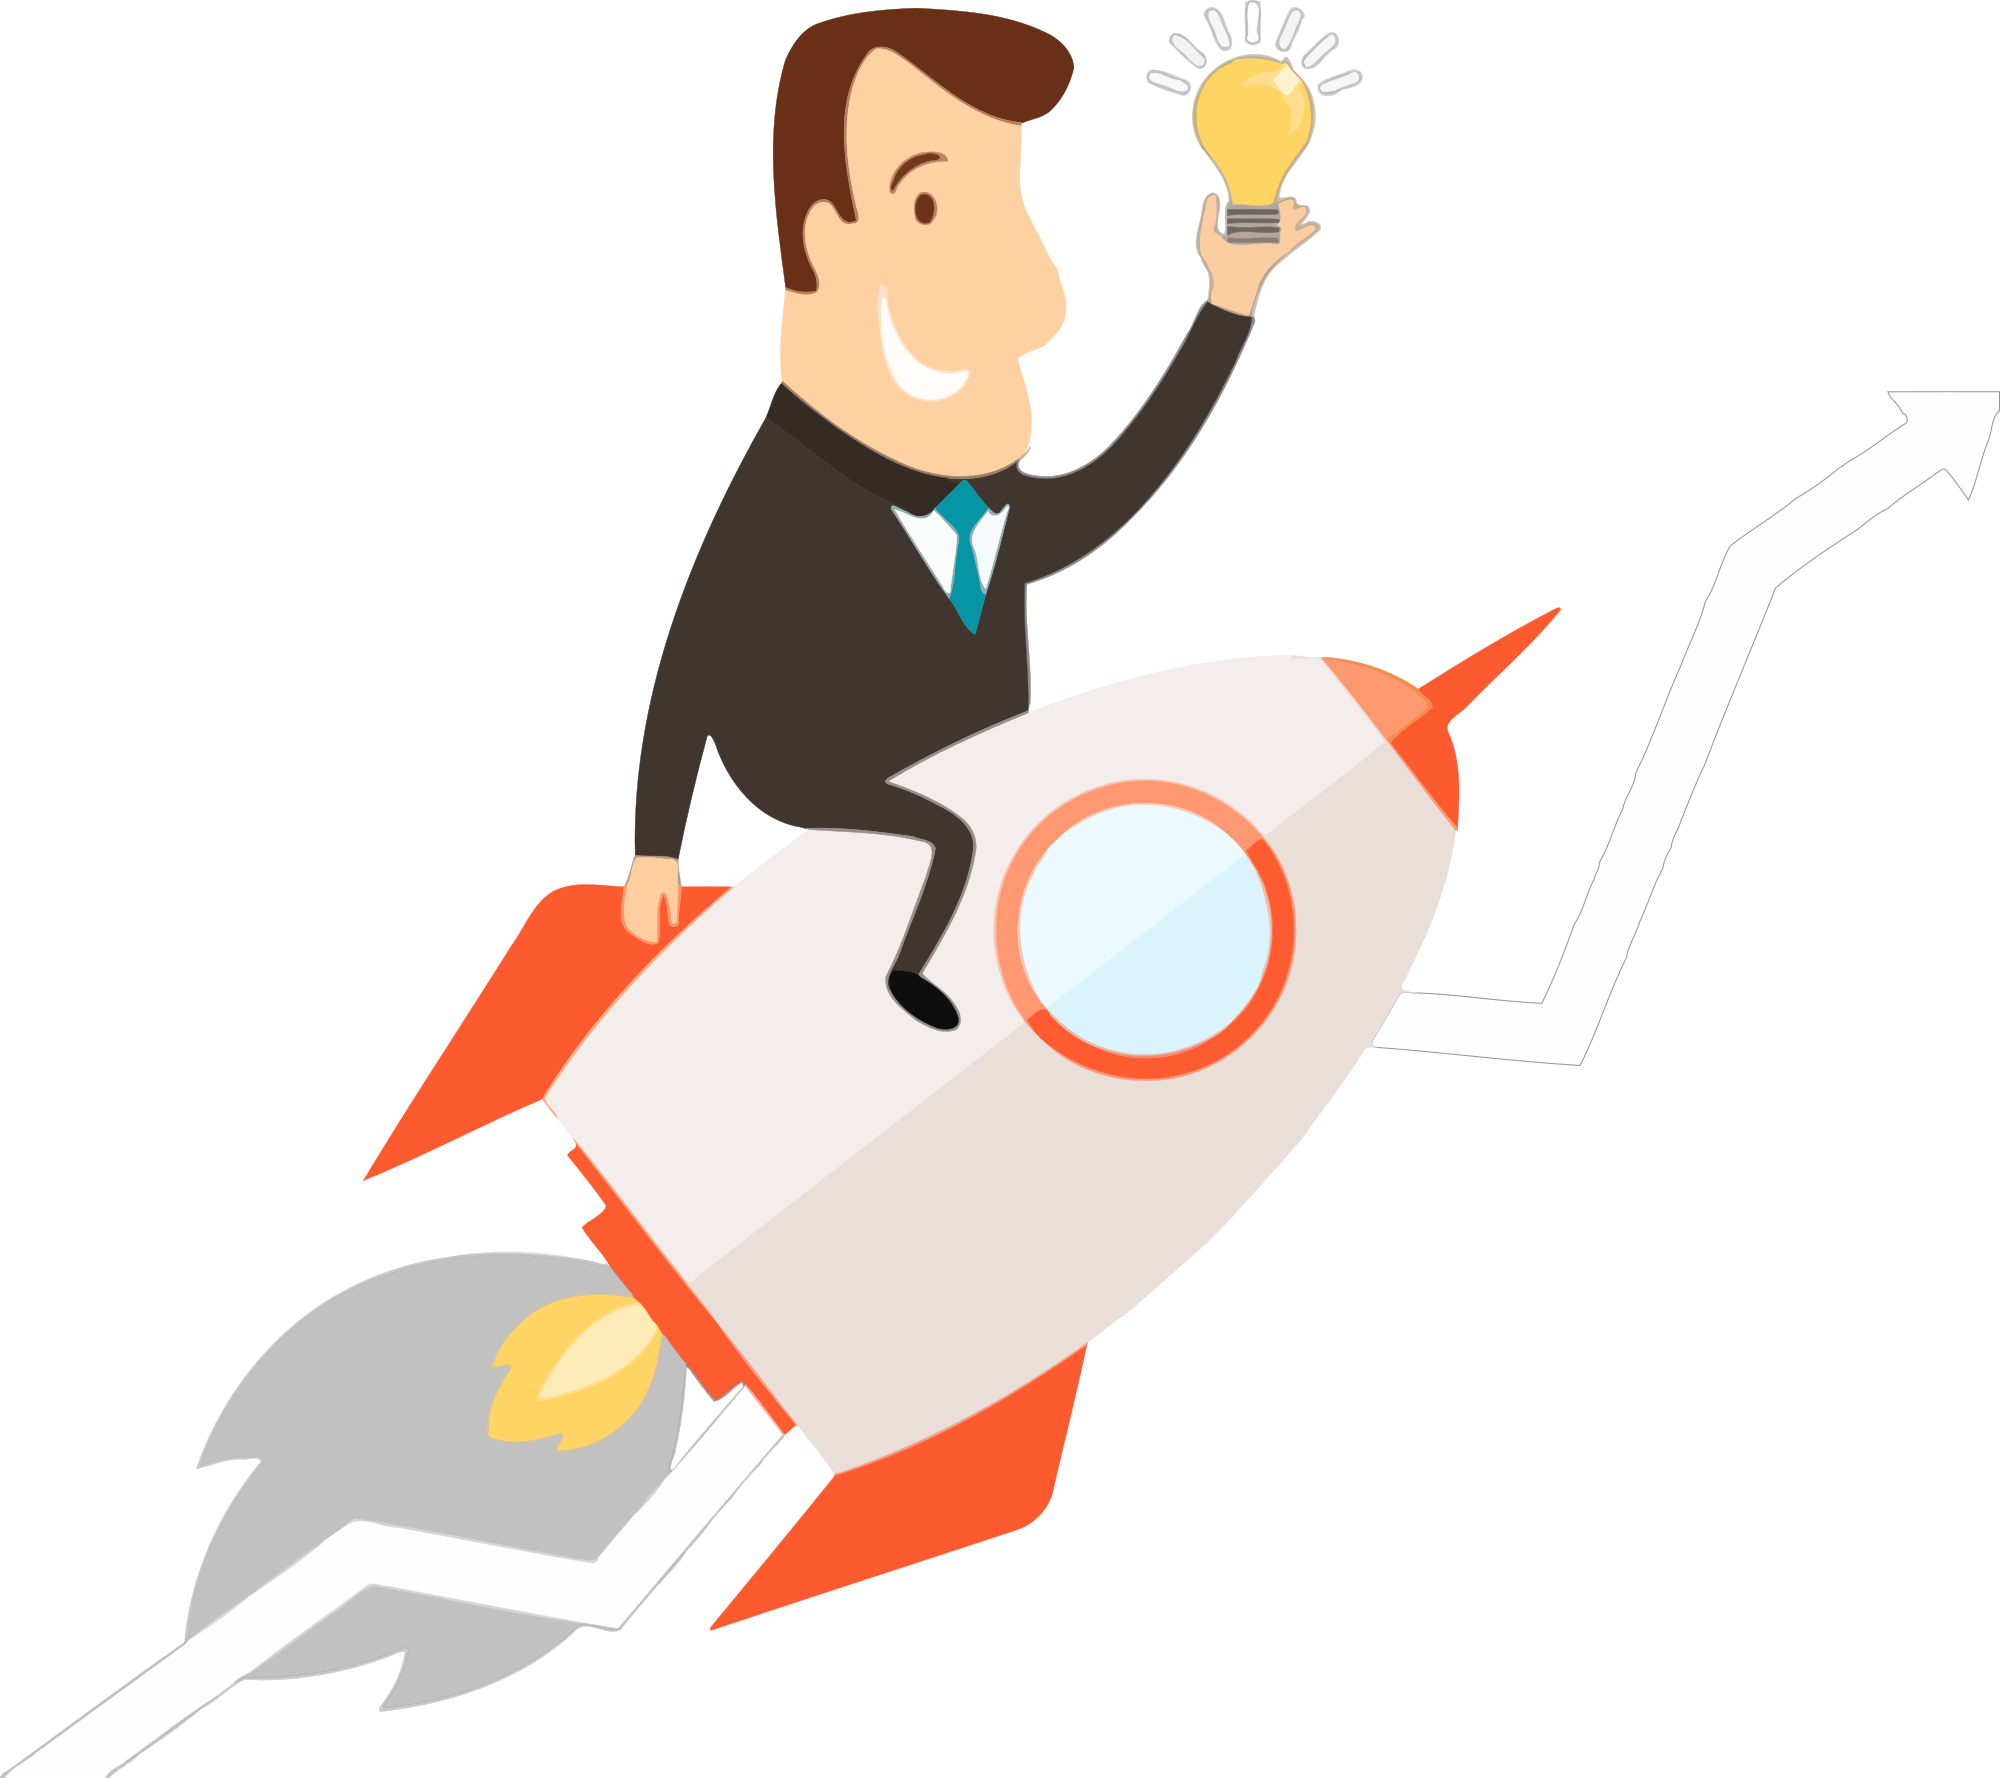 Flying rocket. Free man a clipart